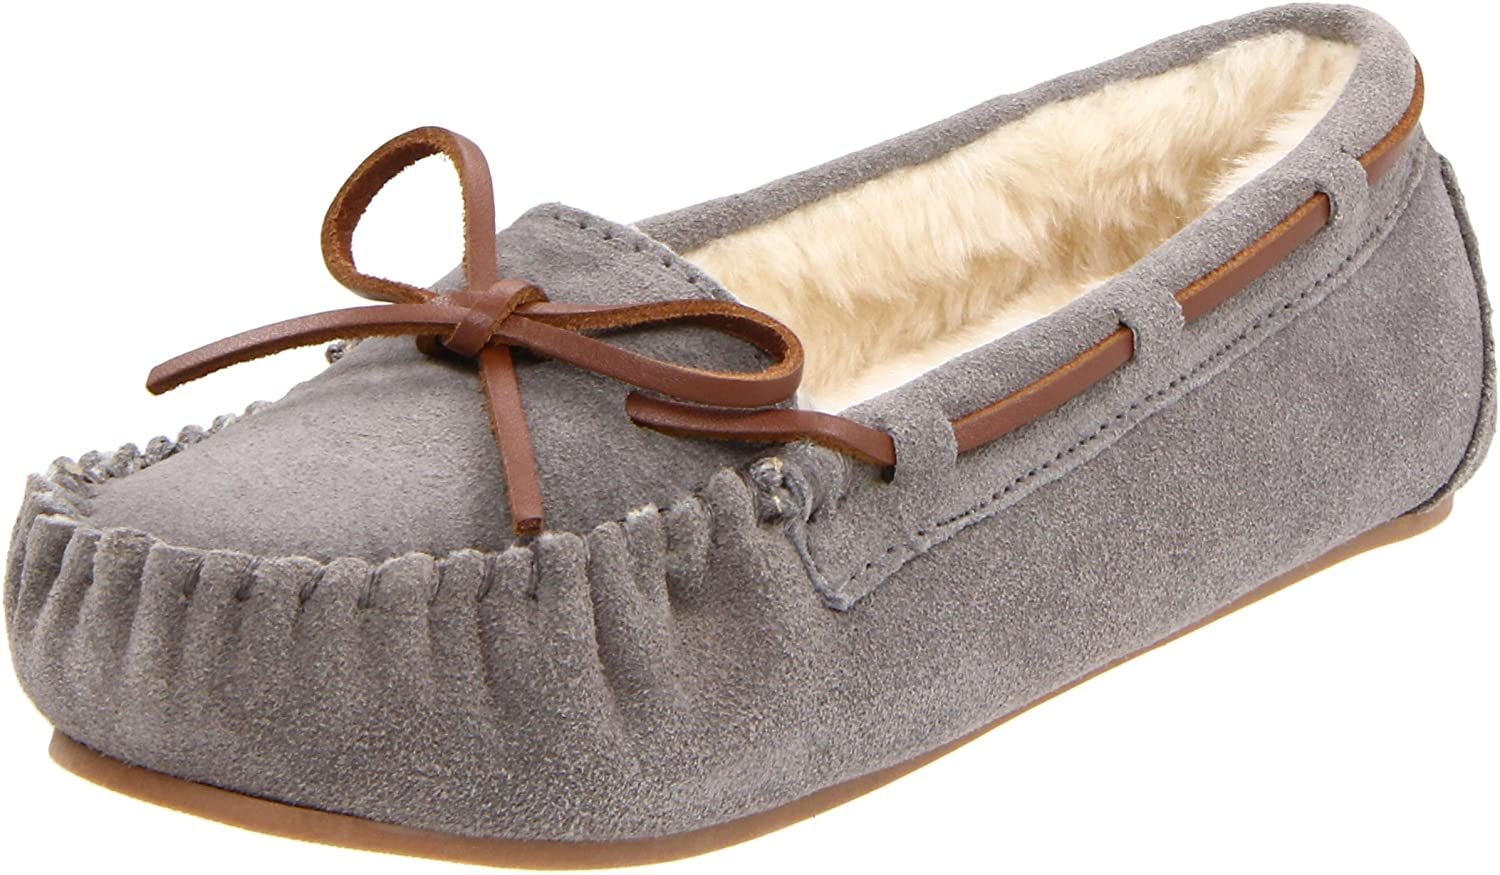 Tamarac by Slippers International Women's Low Molly Faux Slipper Blitz B073V823YG 9 C/D US|Grey